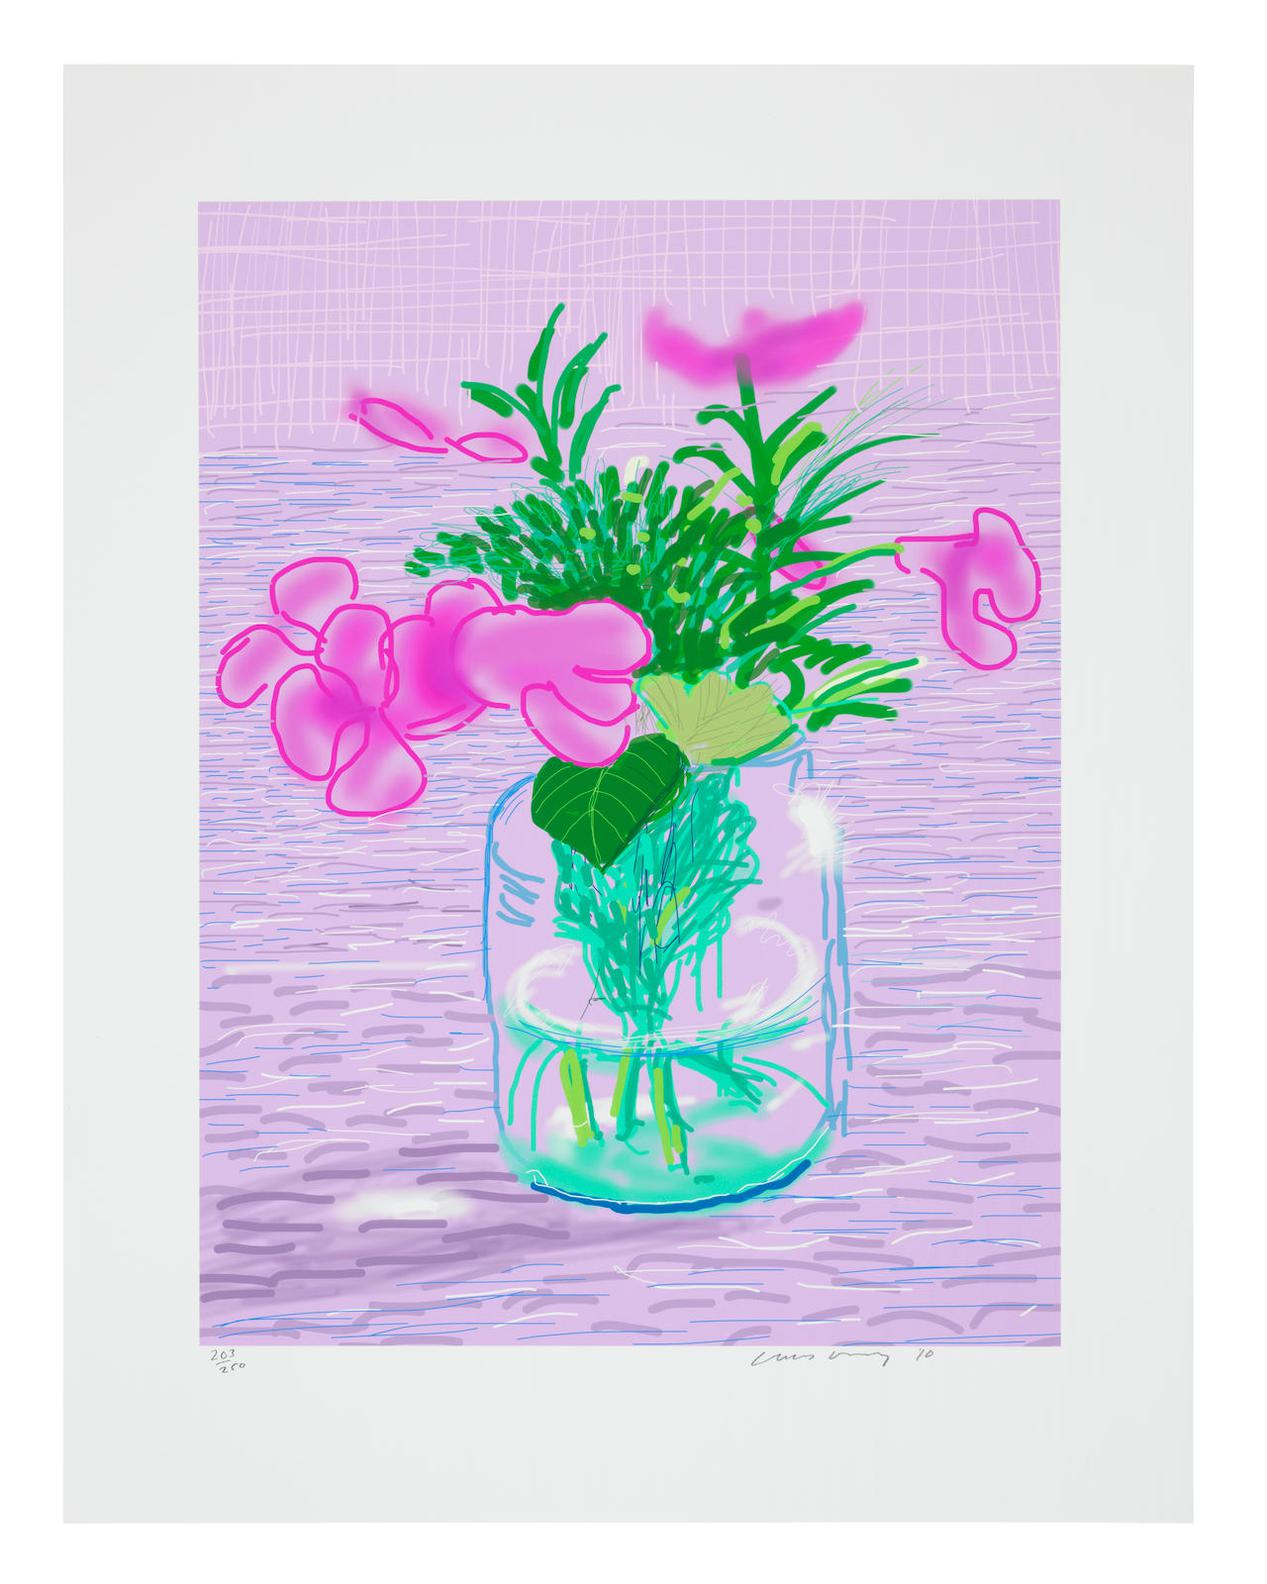 David Hockney-Untitled No.329, From A Bigger Book: Art Edition A-2016